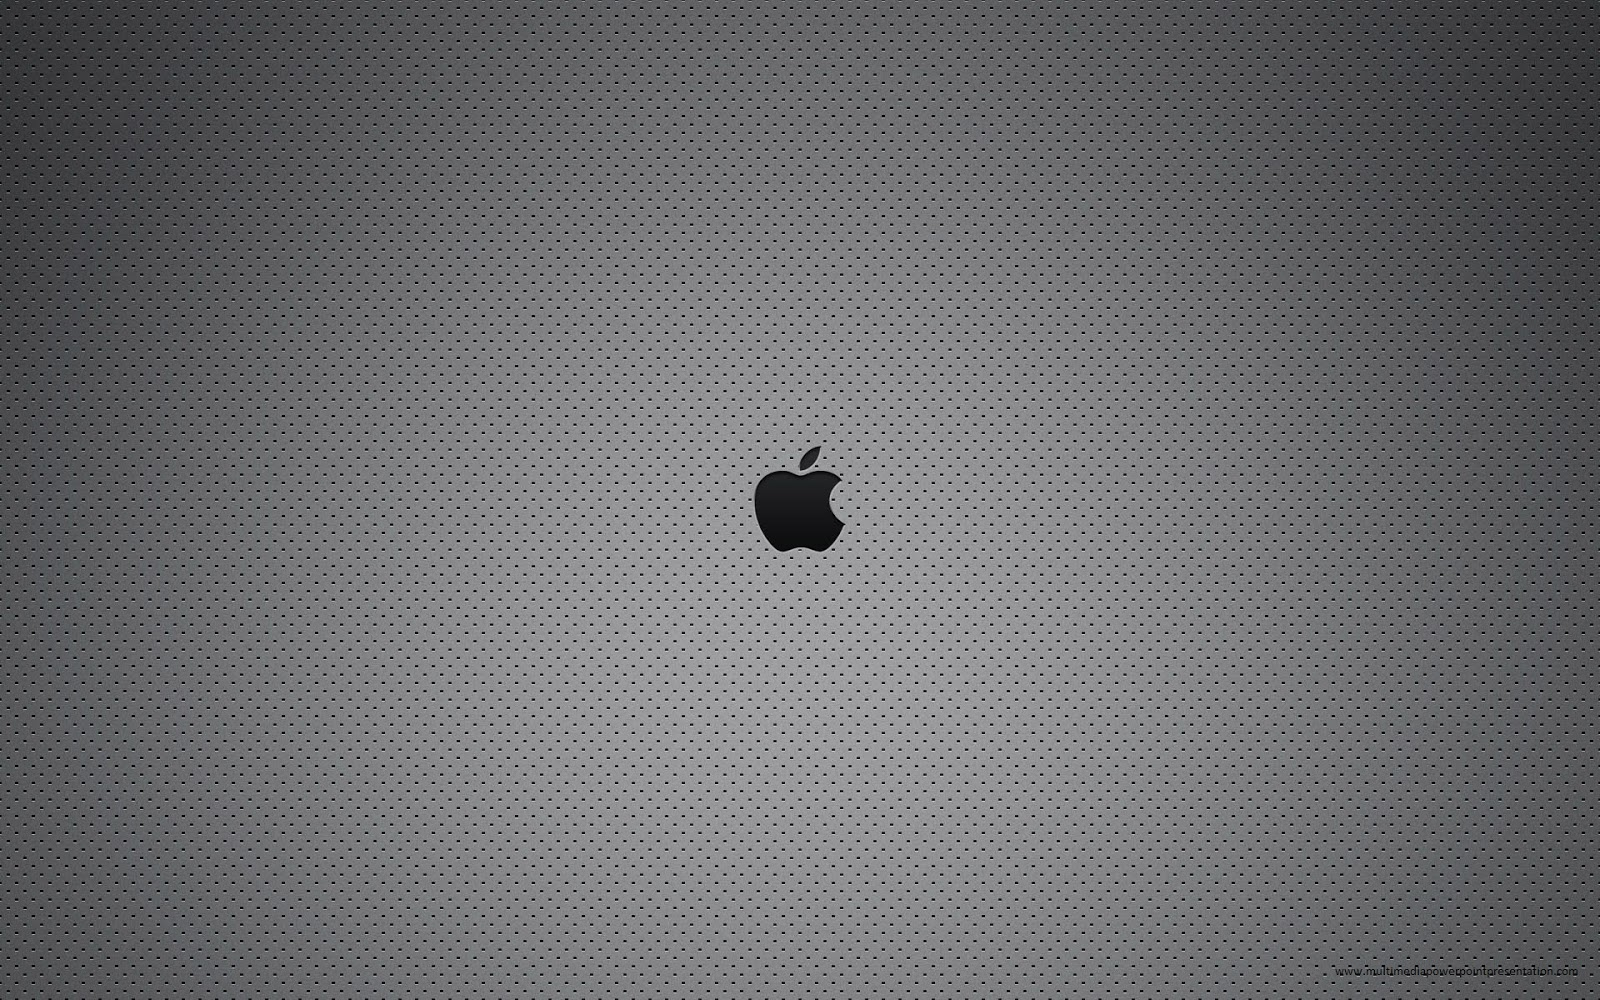 Power point templates apple style power point decor power point templates apple style toneelgroepblik Choice Image